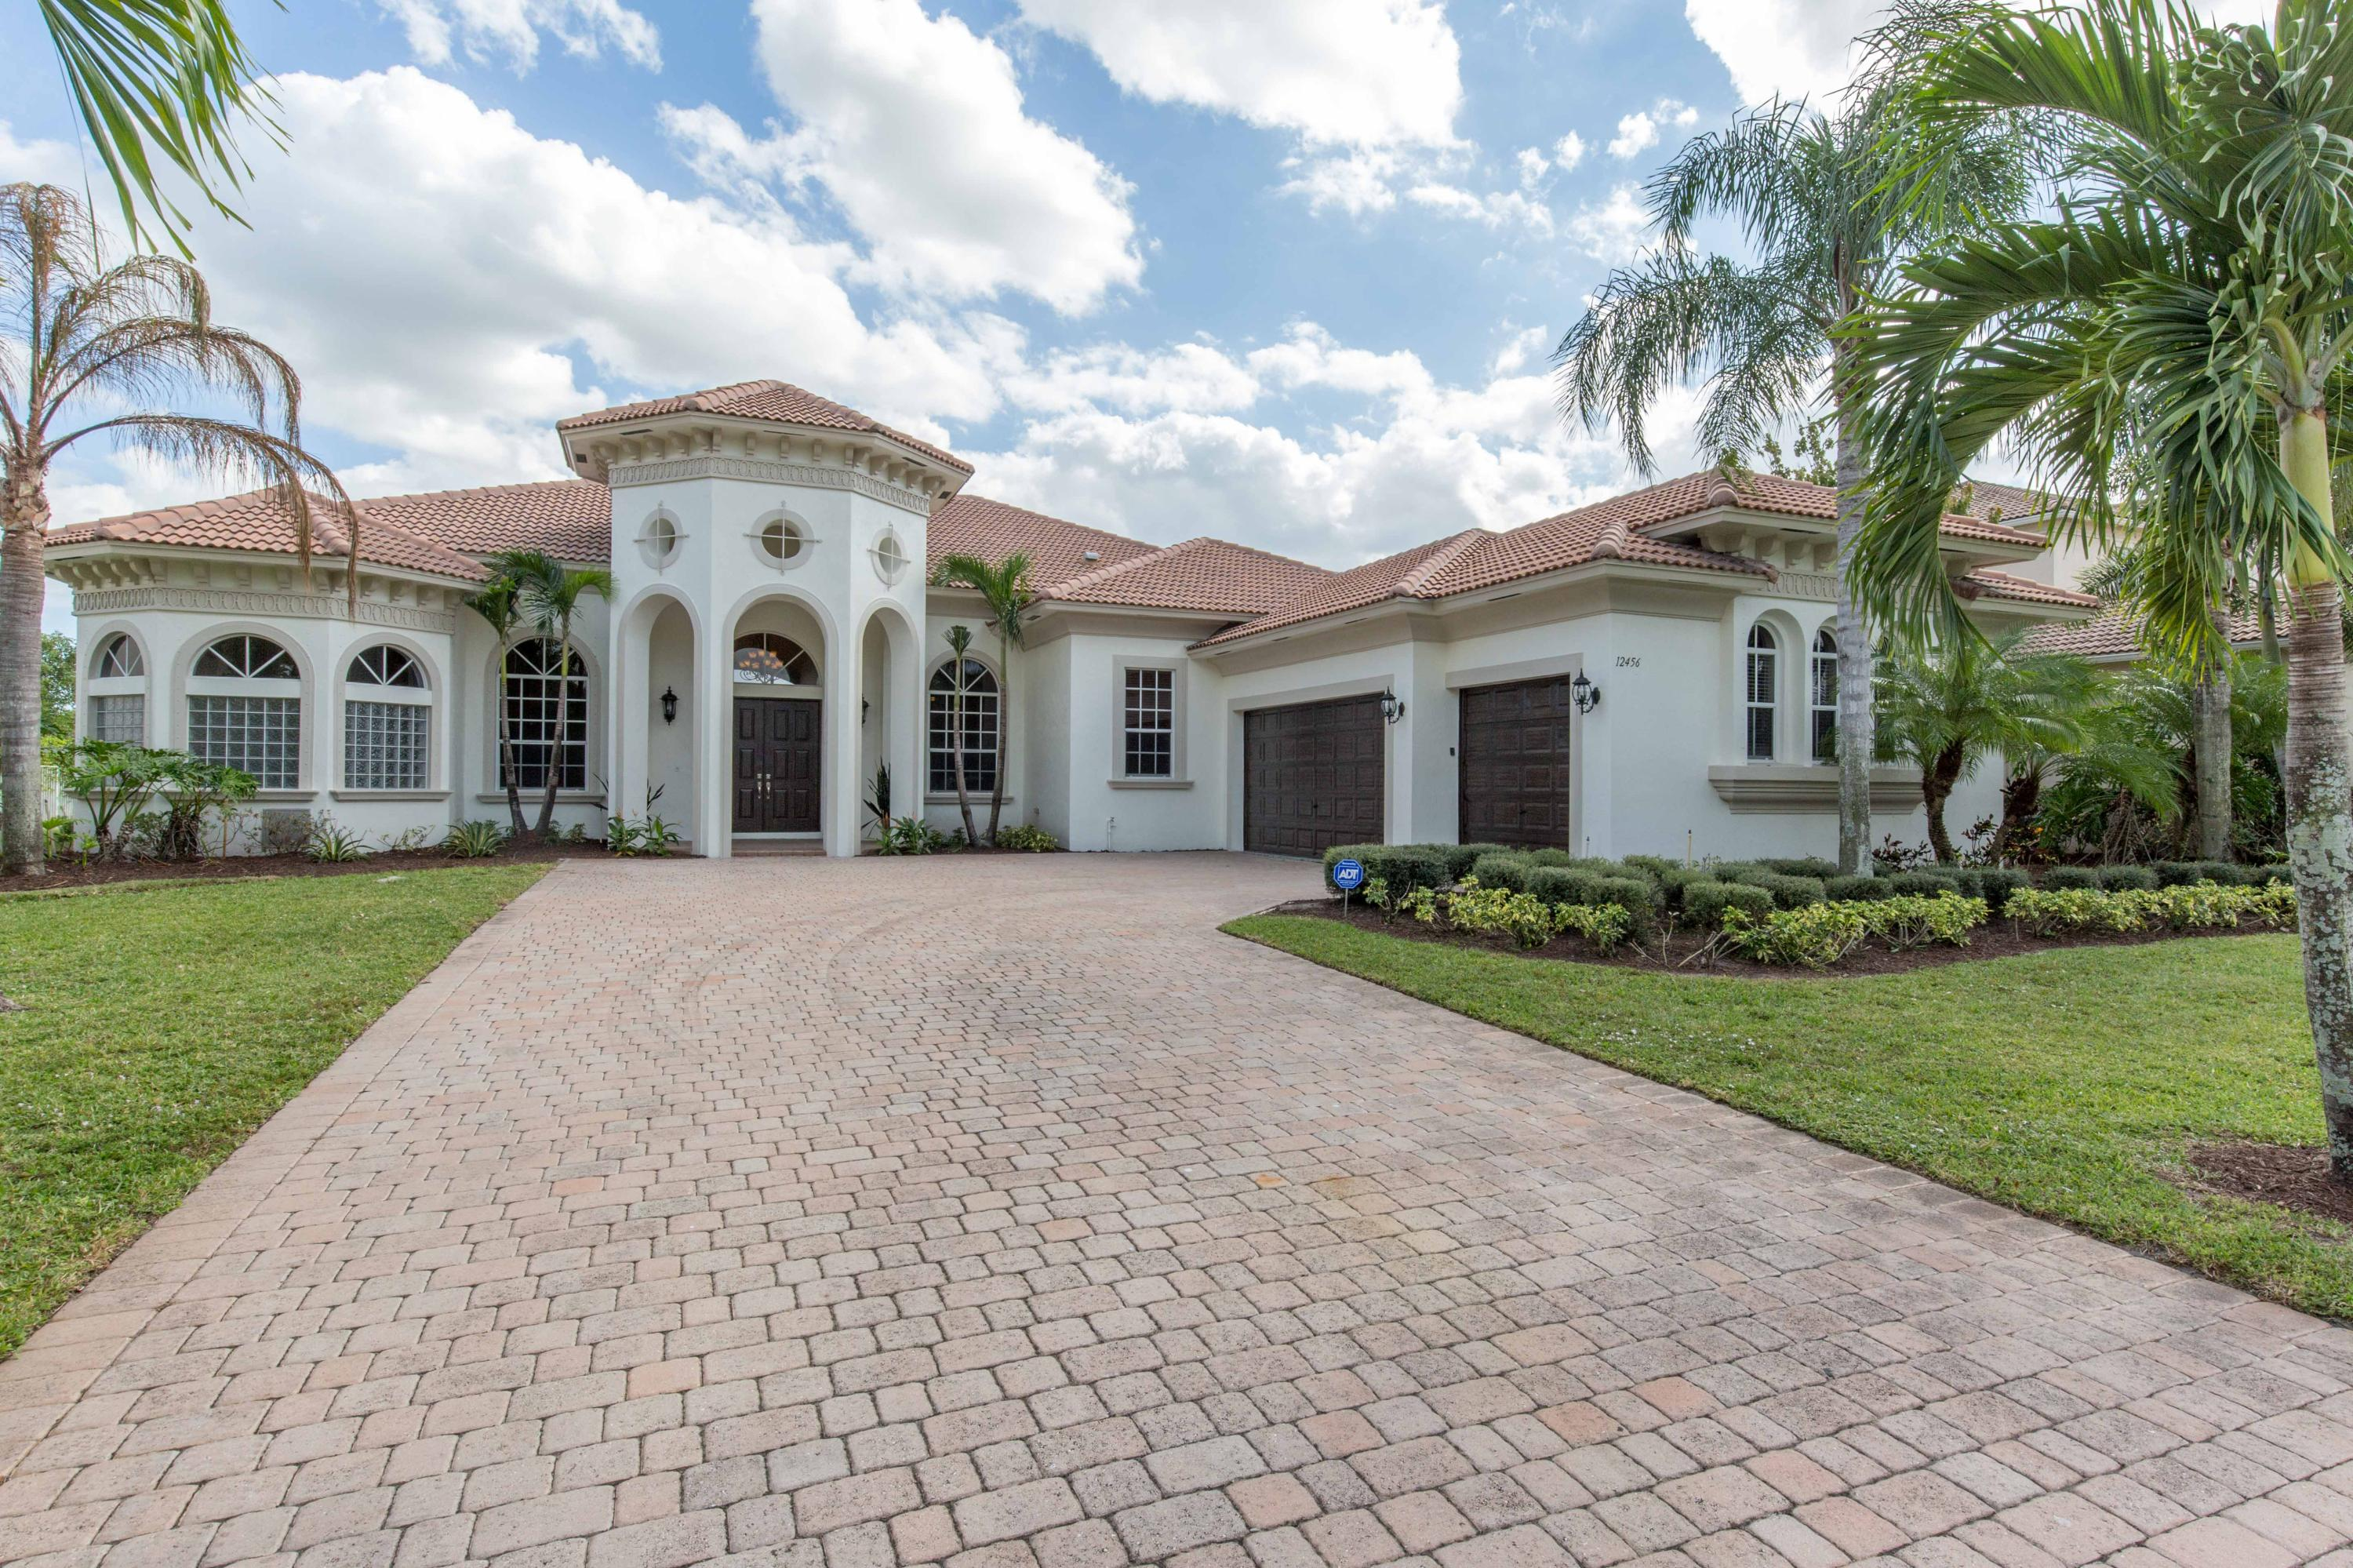 12456 Equine Lane, Wellington, Florida 33414, 5 Bedrooms Bedrooms, ,4.1 BathroomsBathrooms,Single Family,For Sale,EQUESTRIAN CLUB,Equine,1,RX-10481623